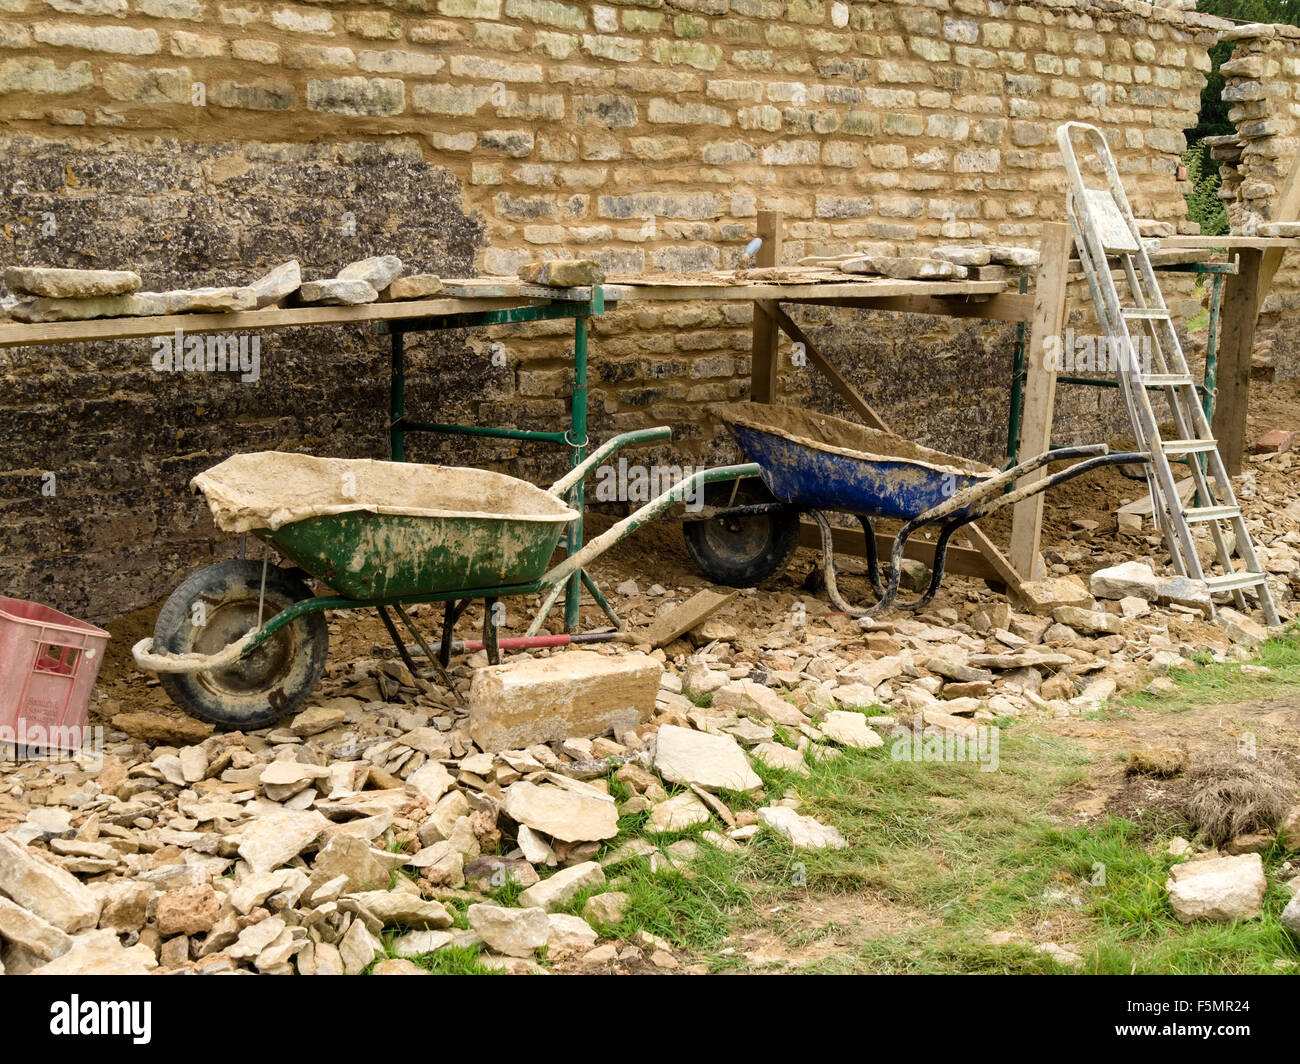 Old Natural, Limestone Garden Wall Renovation And Repair With Builderu0027s  Tools, Wheelbarrows, Trestles